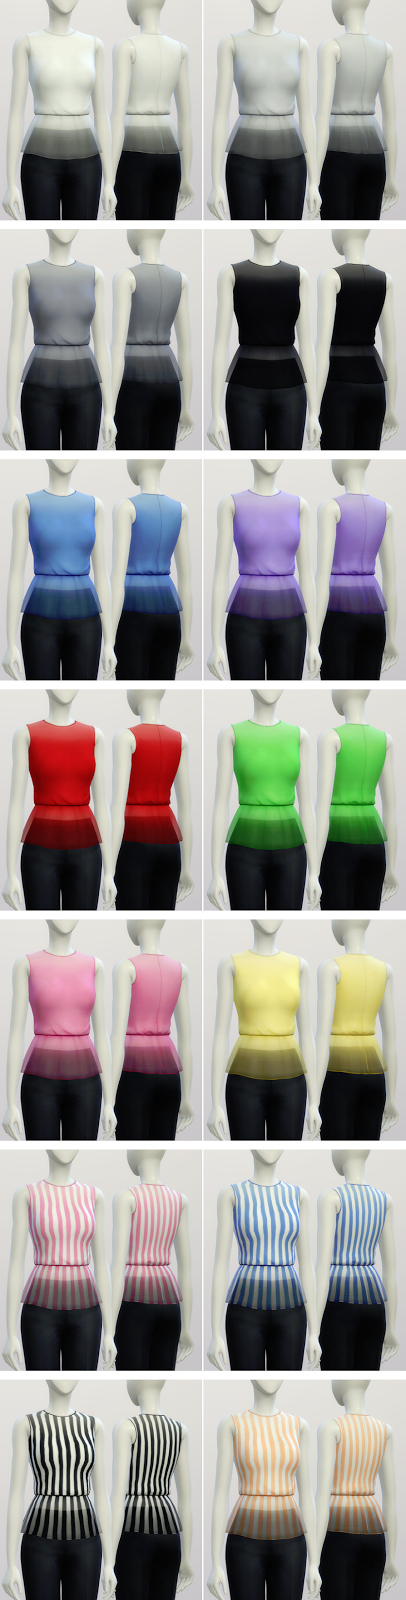 Basic Peplum Blouse by Rusty Nail